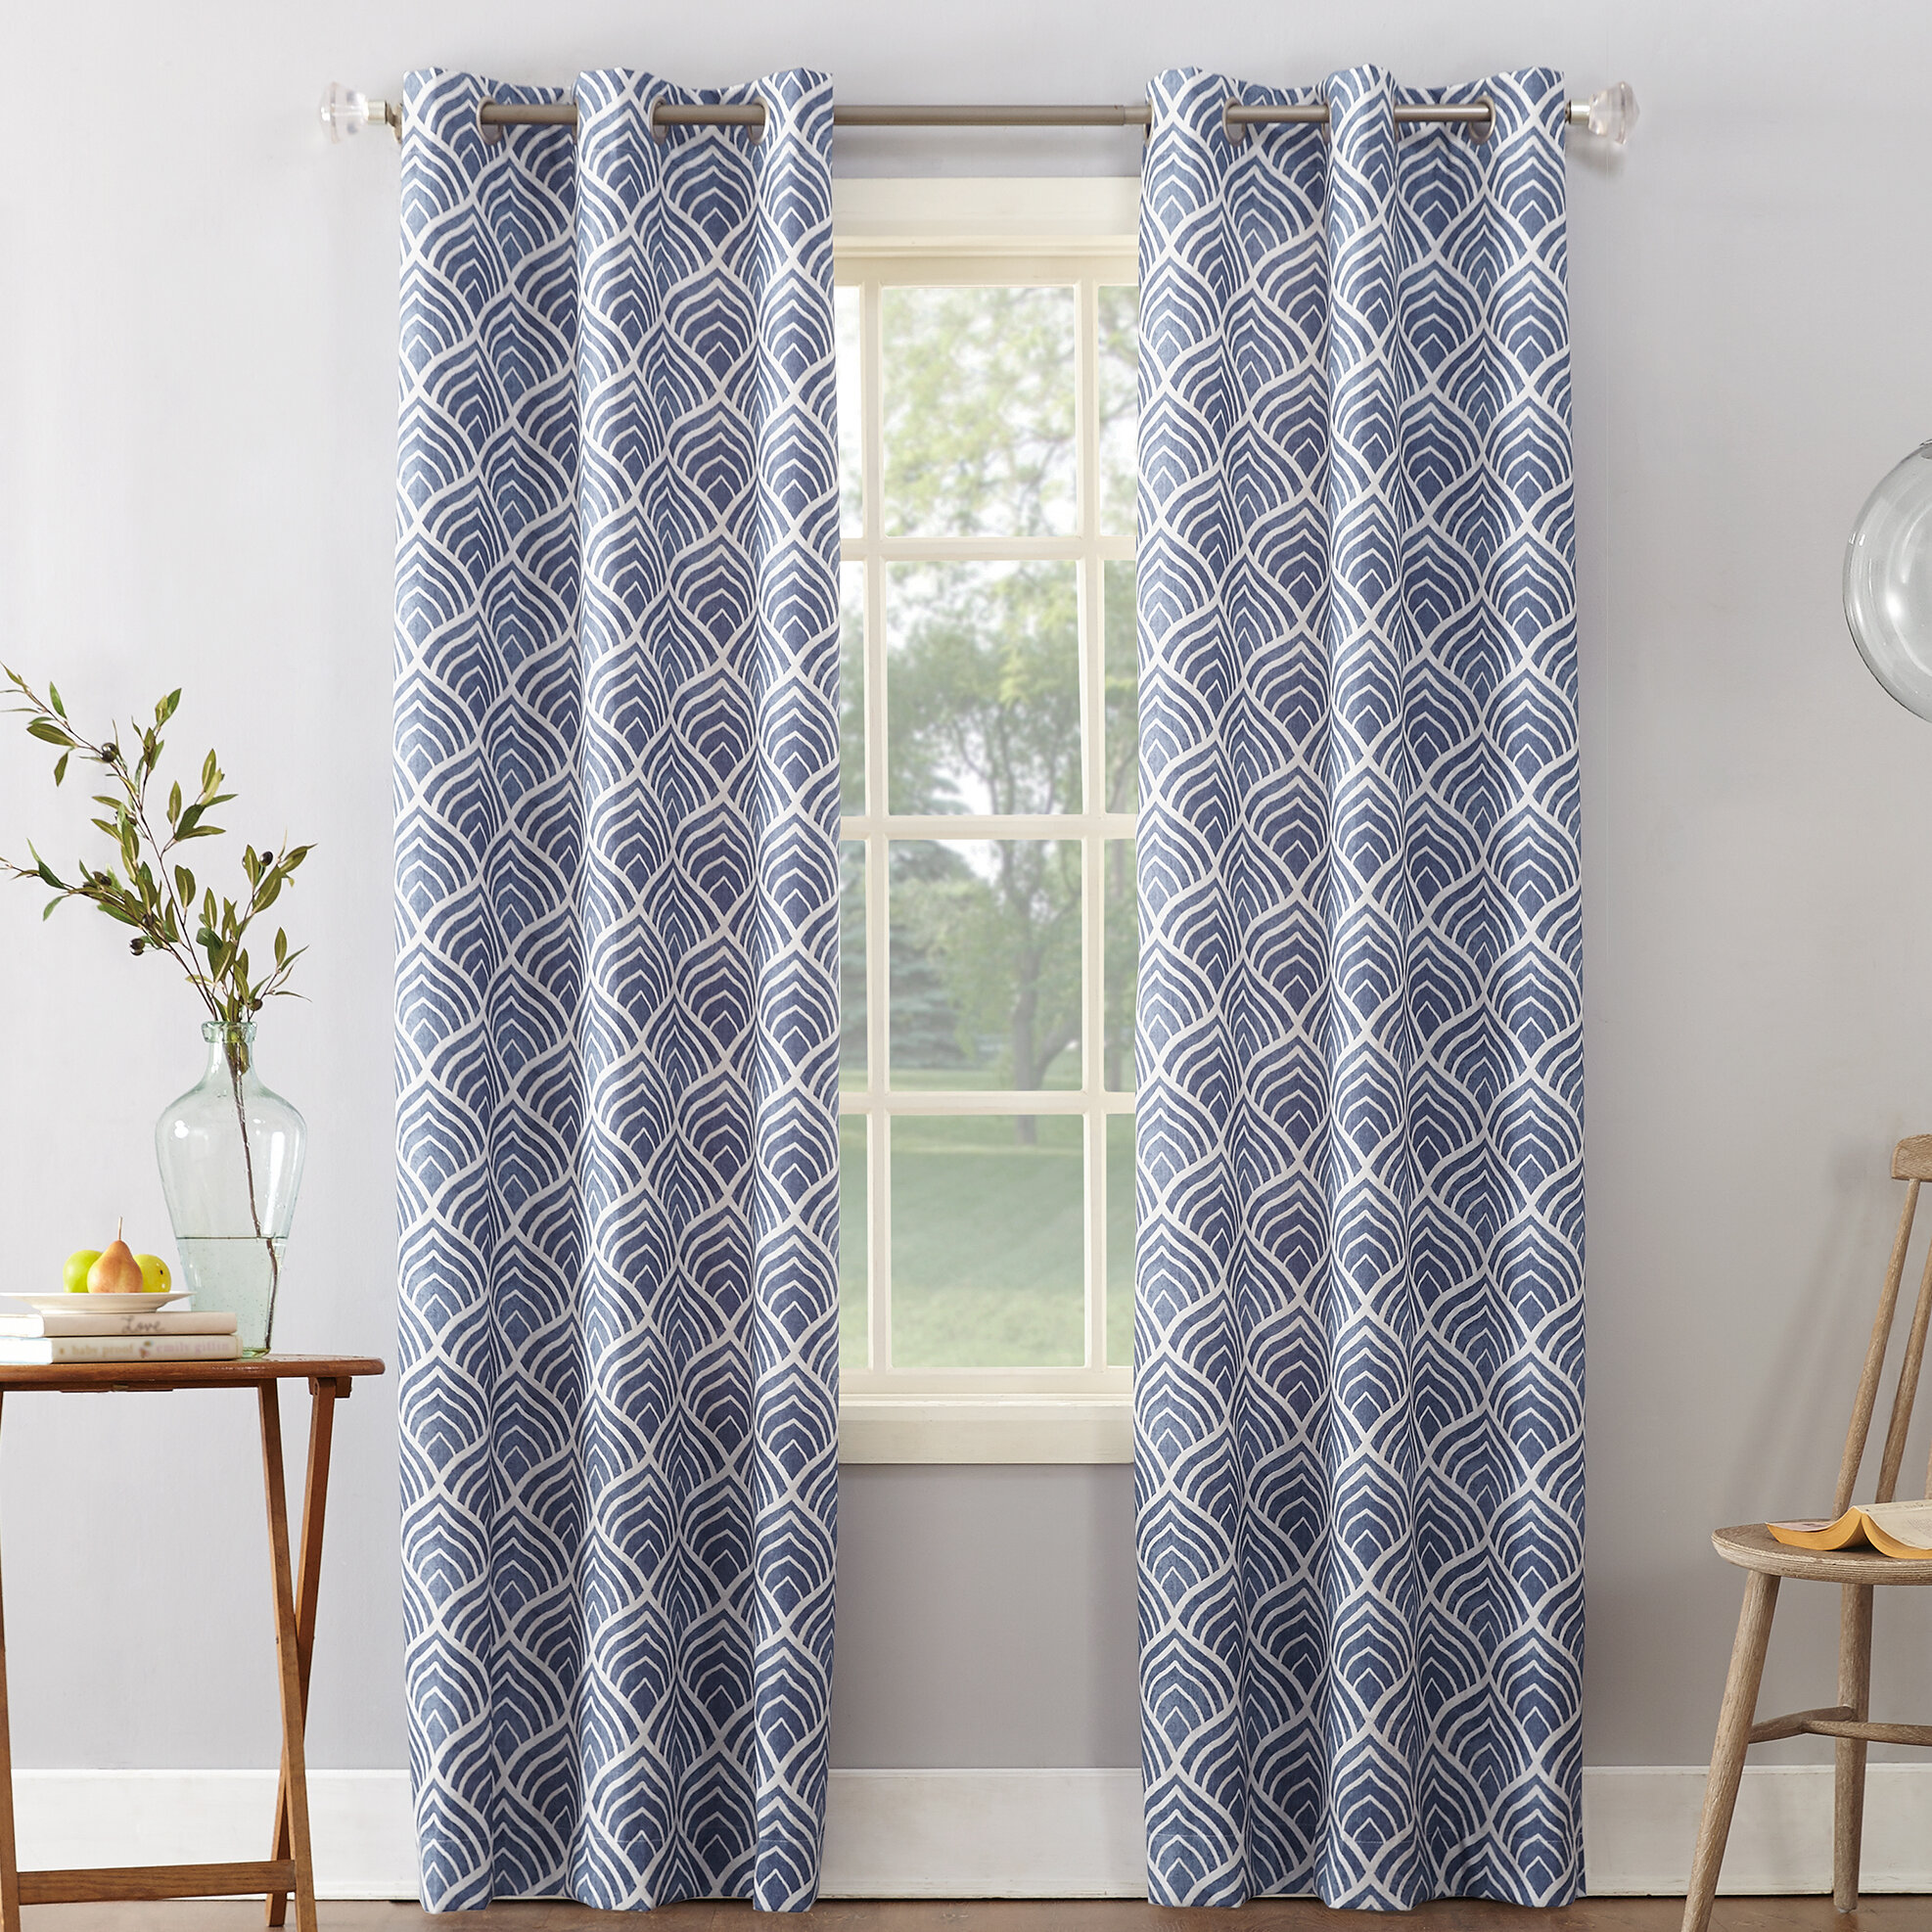 solar light home panel of then blocking curtain ideas fun large resistant l curtains size heat decoratin